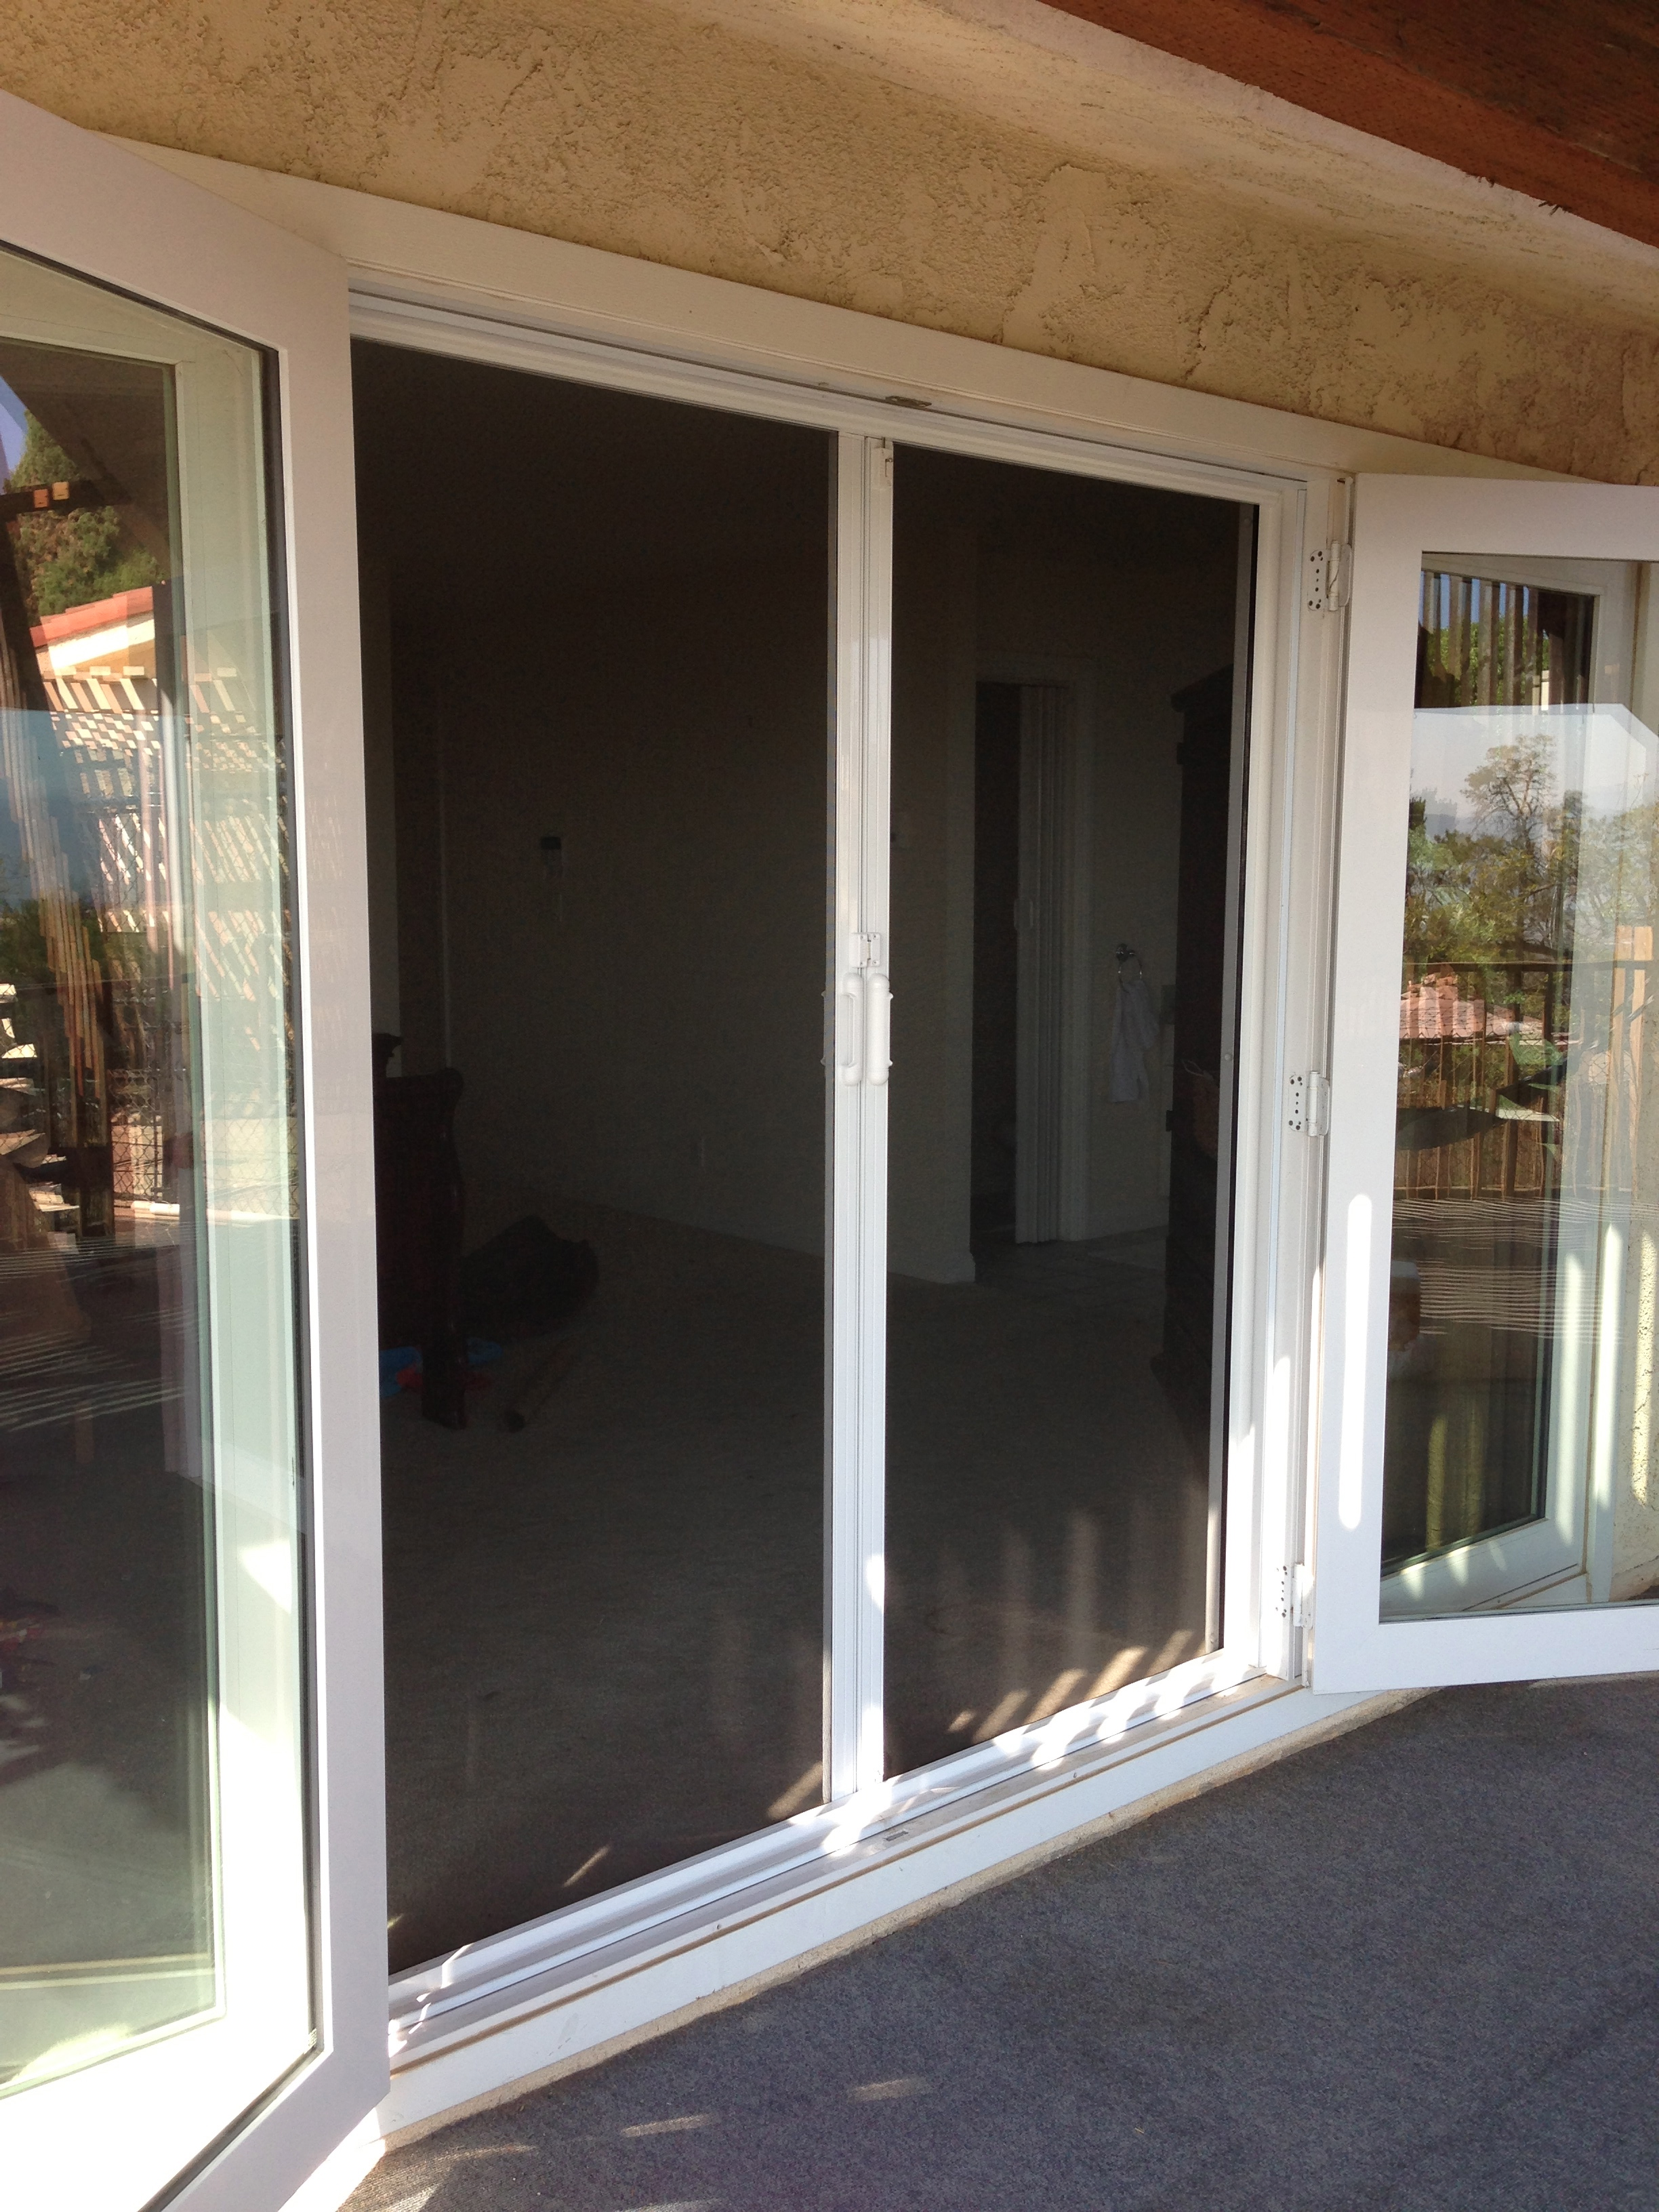 Retractable screen doors screen door and window screen for Retractable screen door replacement